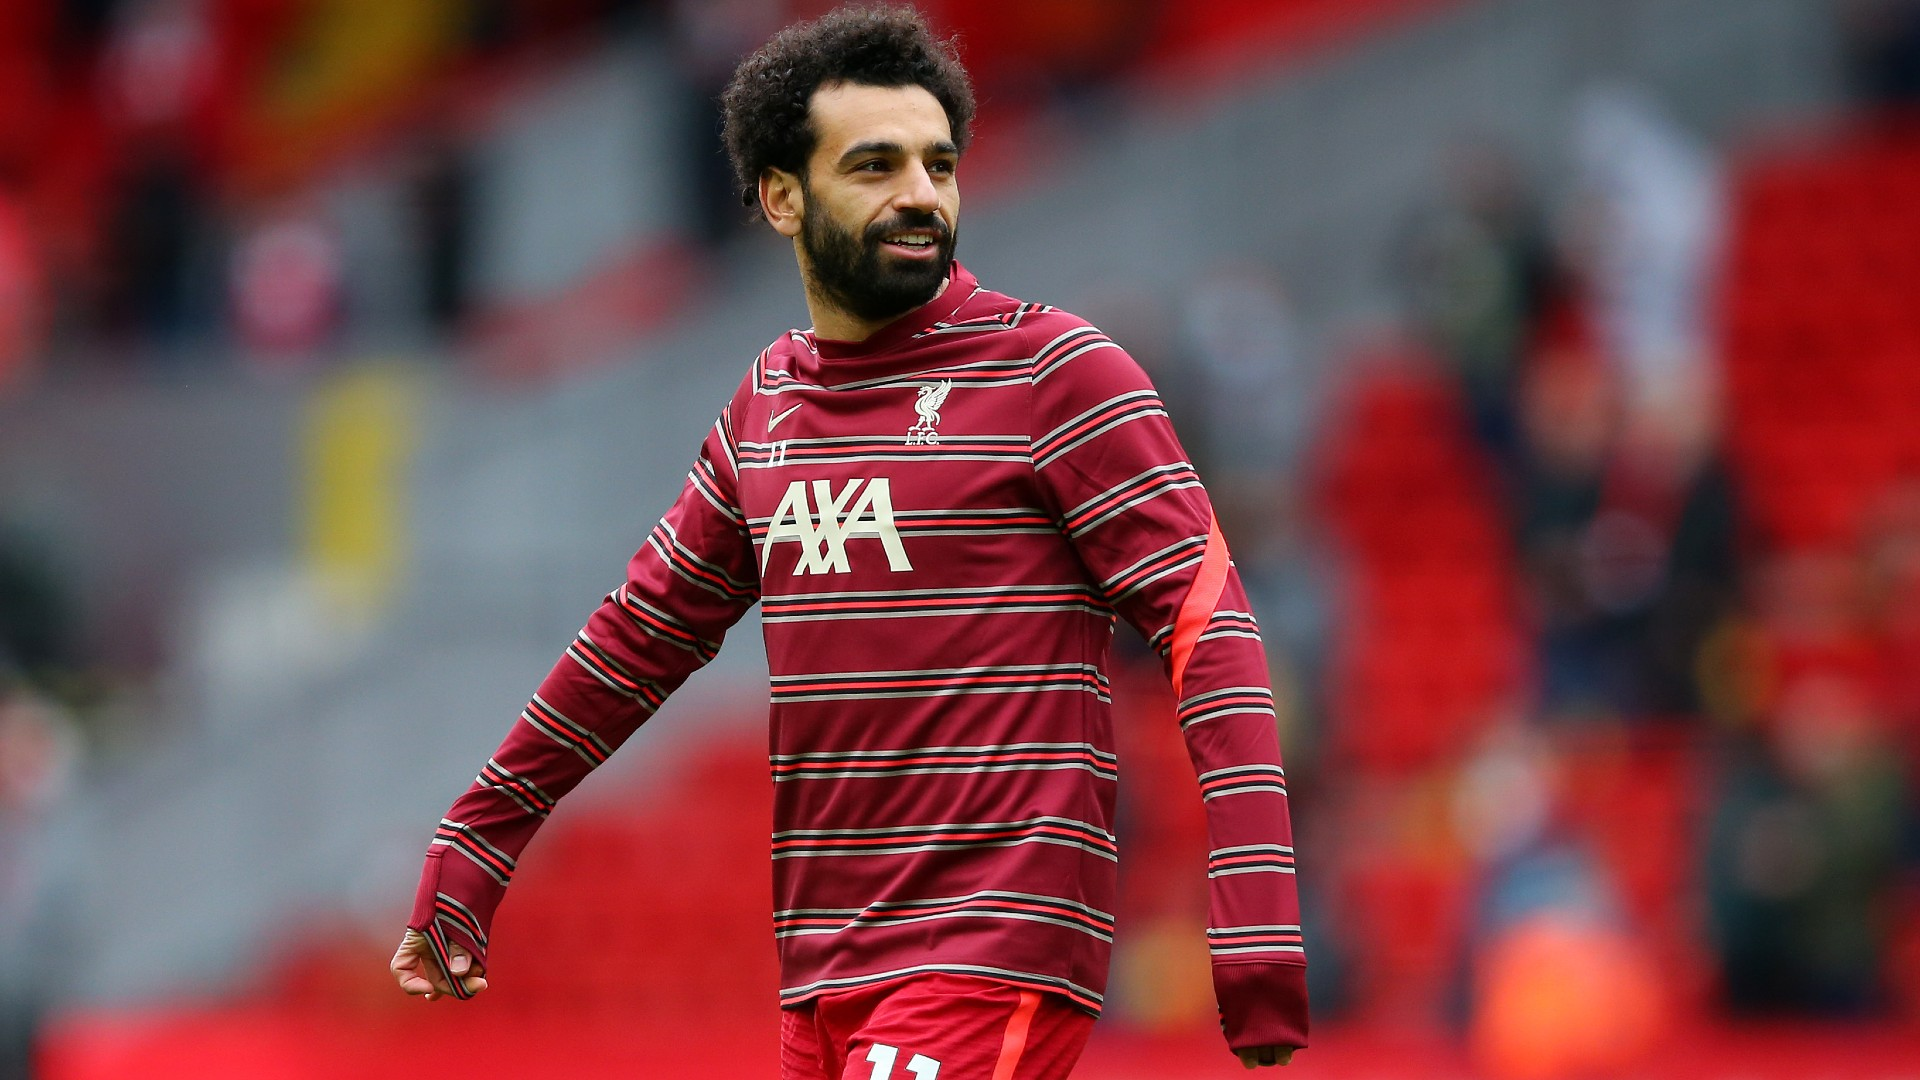 'I would not be selfish enough to deny chance' - Pearce slams Liverpool for denying Salah Olympic Games chance